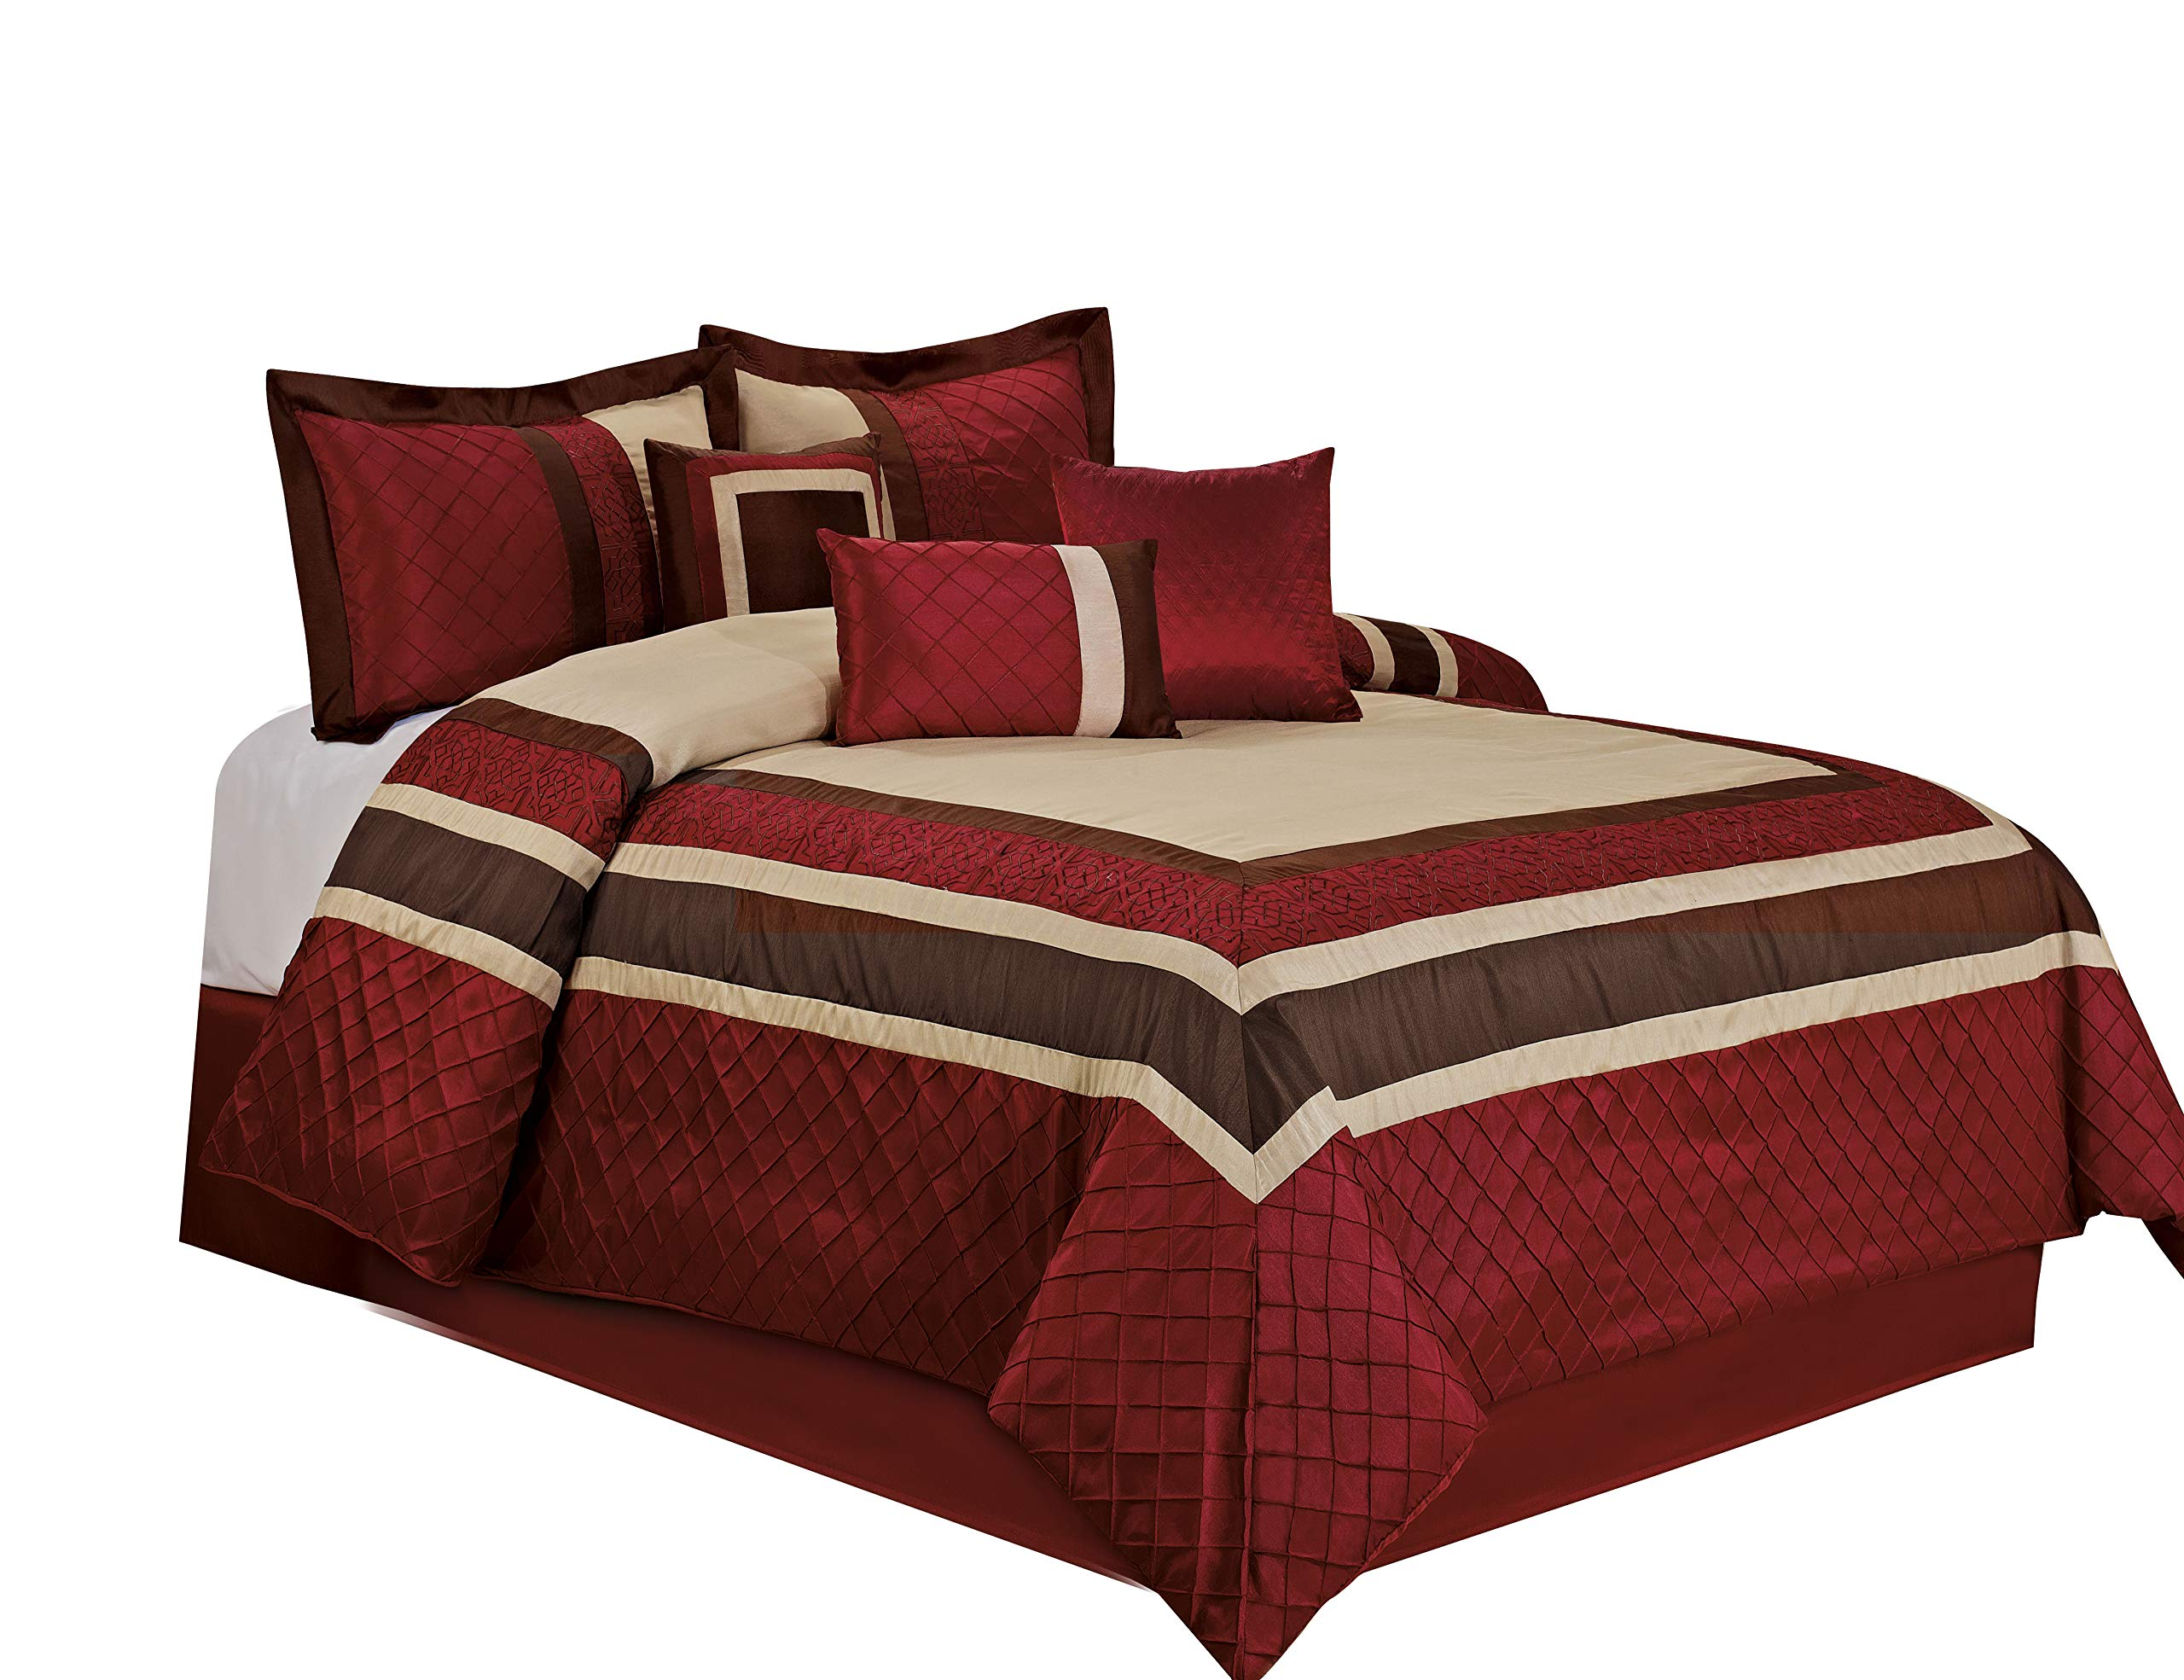 7 Piece MYA Red Bed in a Bag Comforter Sets- Queen King Cal. King Size (Cal. King)